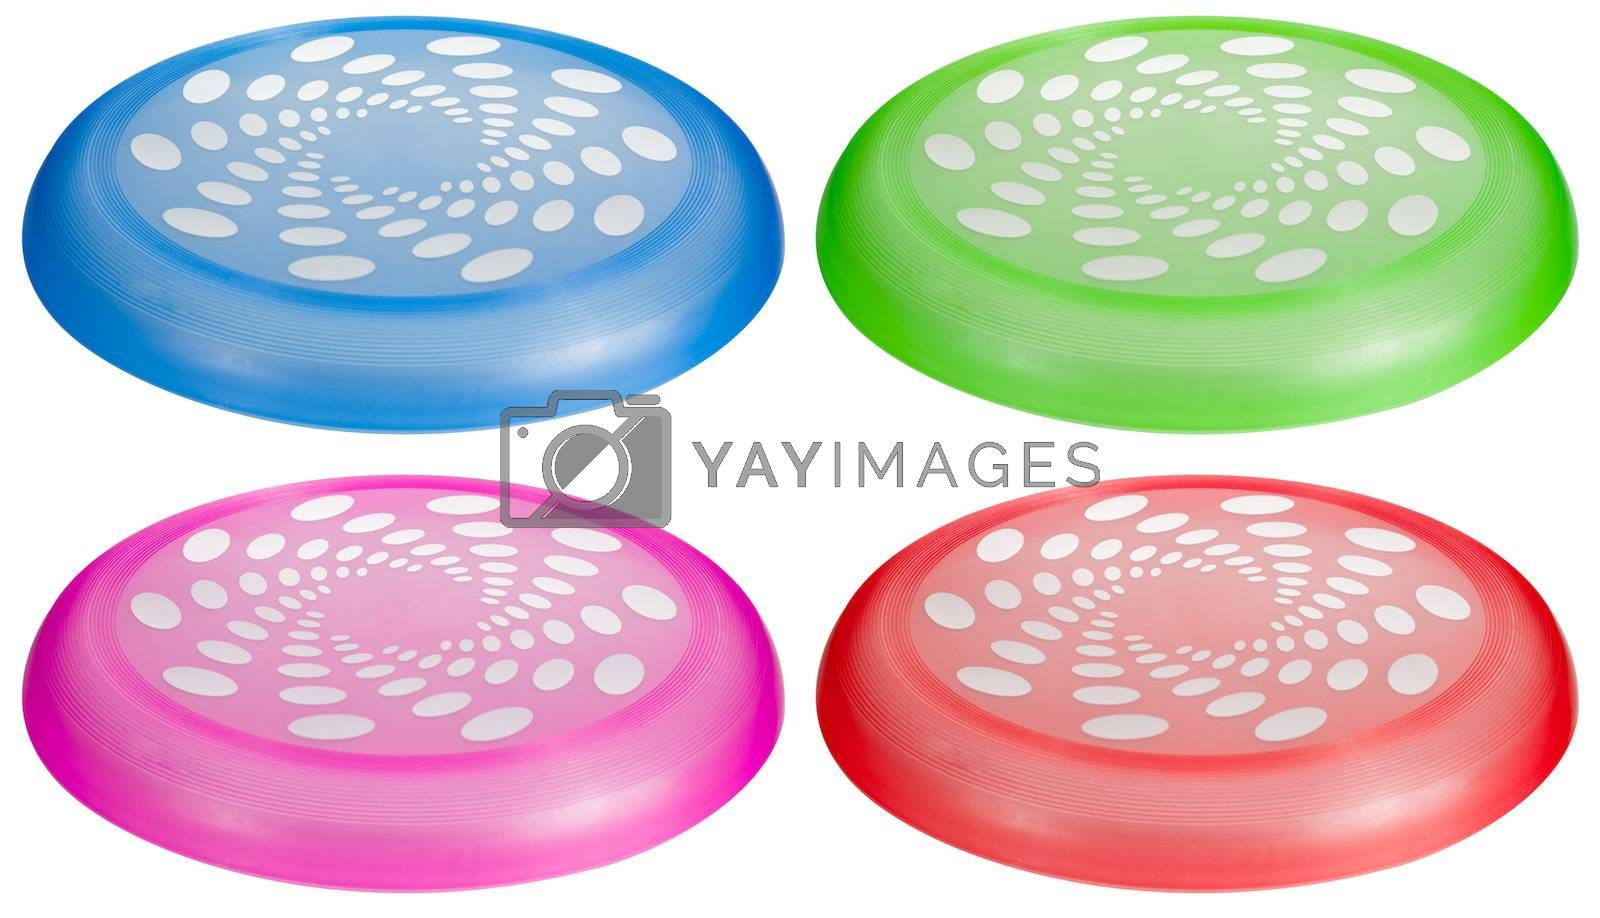 A set of colorful flying toy discs isolated on white.